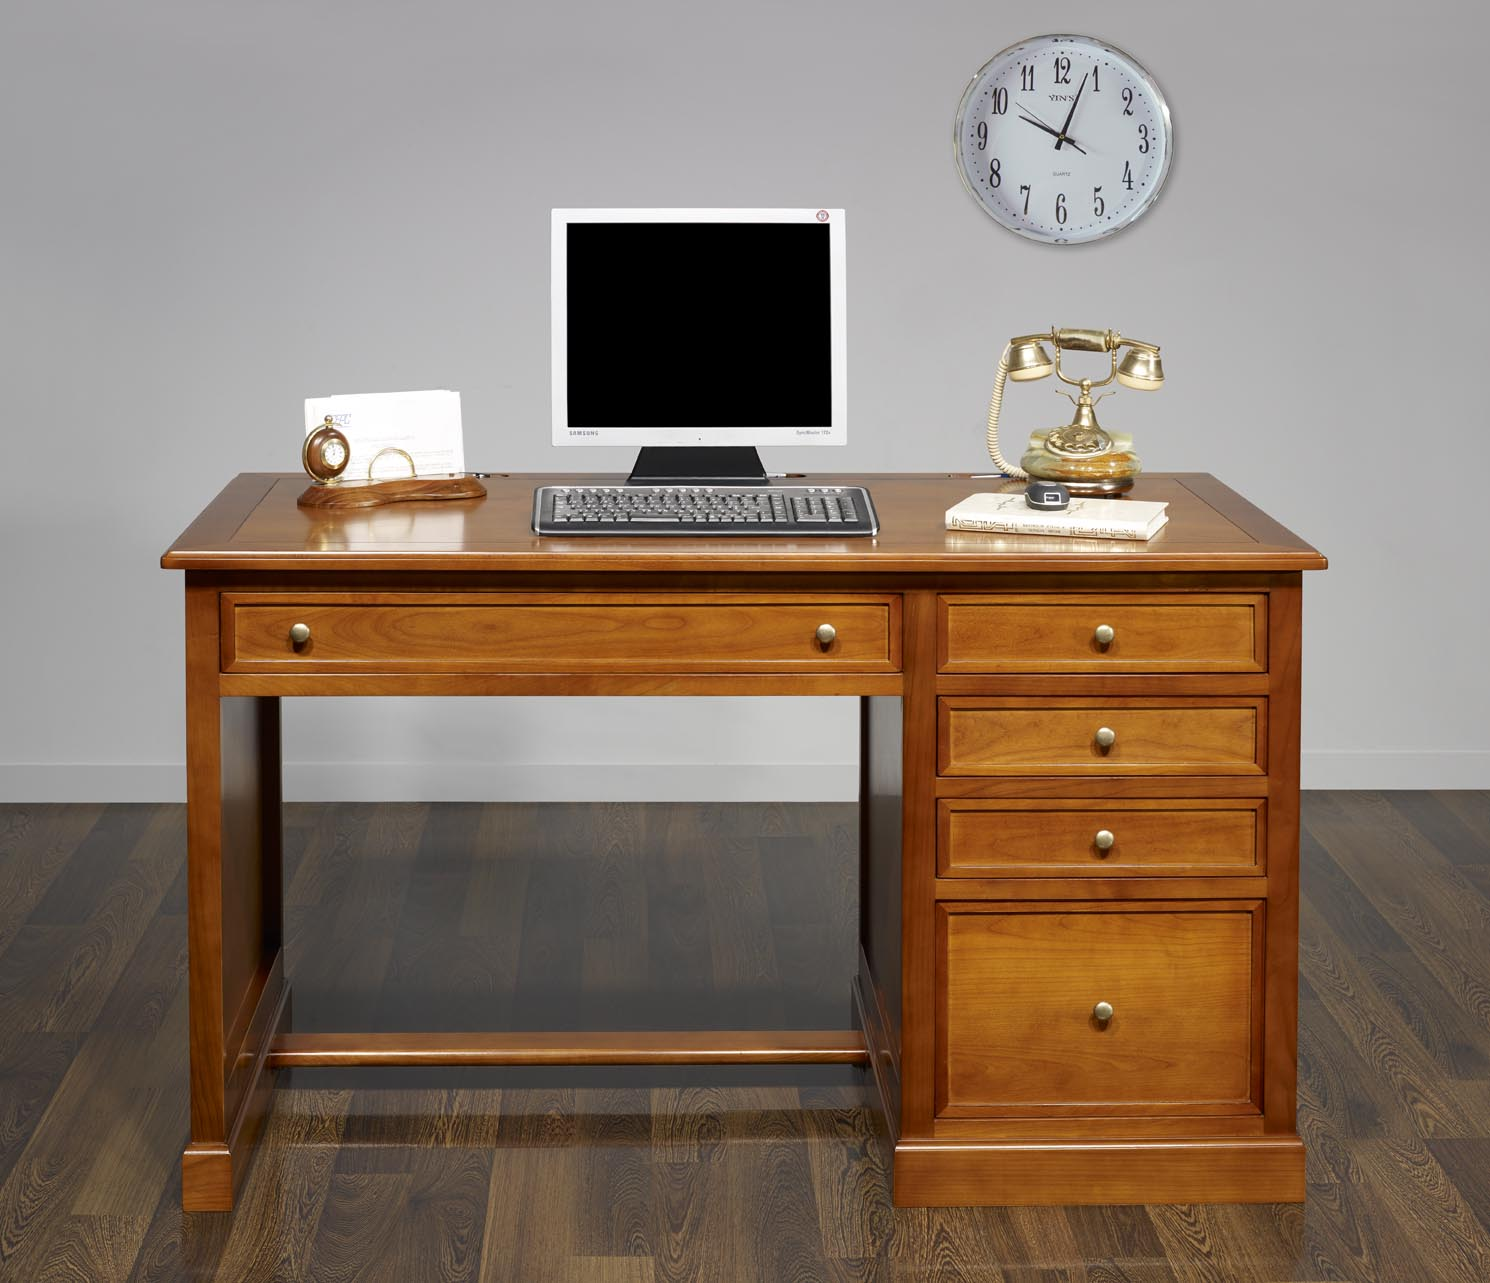 bureau 5 tiroirs jeanne en merisier de style louis philippe meuble en merisier massif. Black Bedroom Furniture Sets. Home Design Ideas